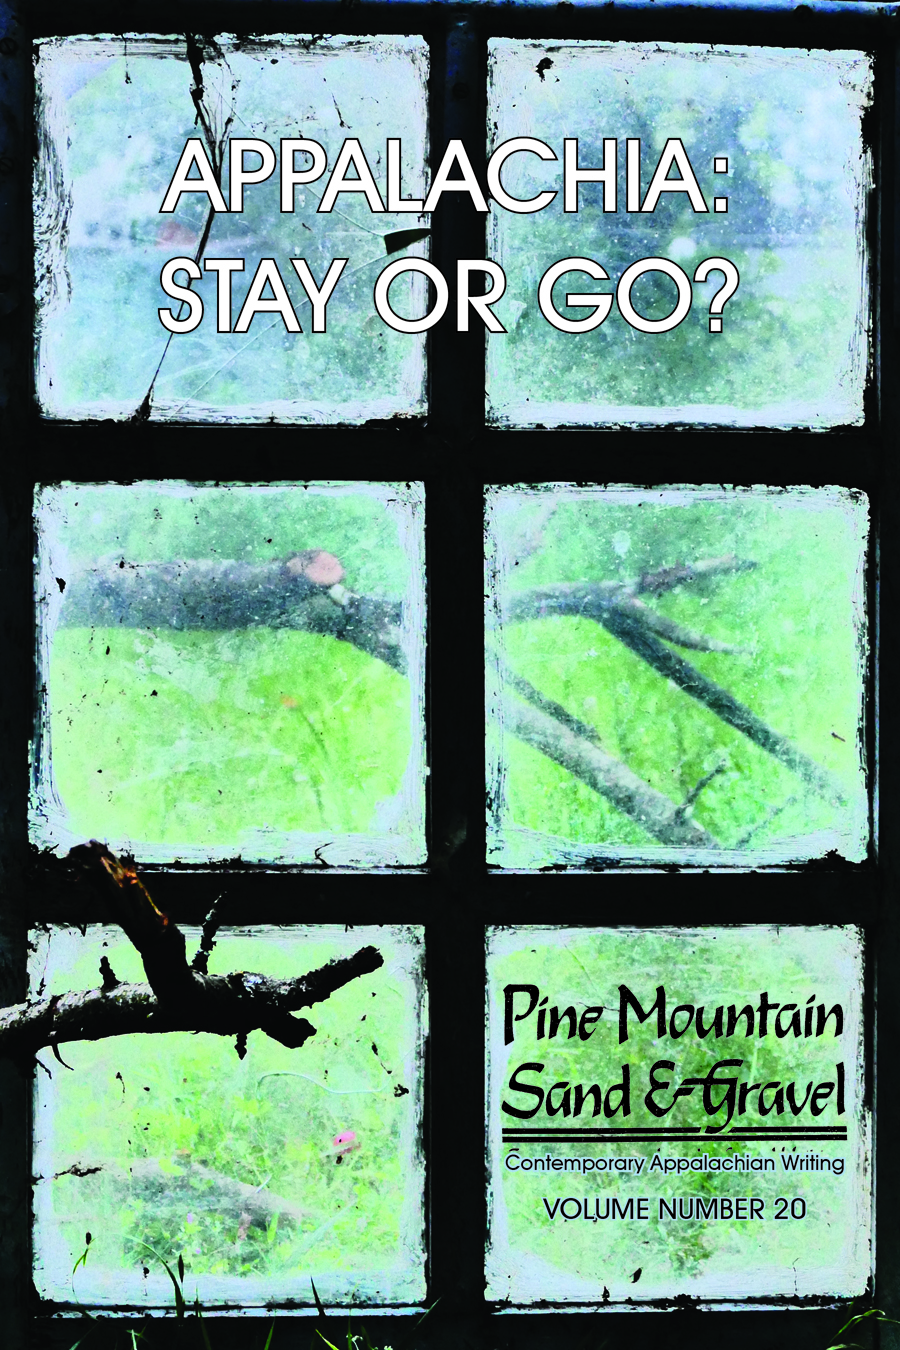 Appalachia: Stay or Go - Volume 20: Pine Mountain Sand & Gravel